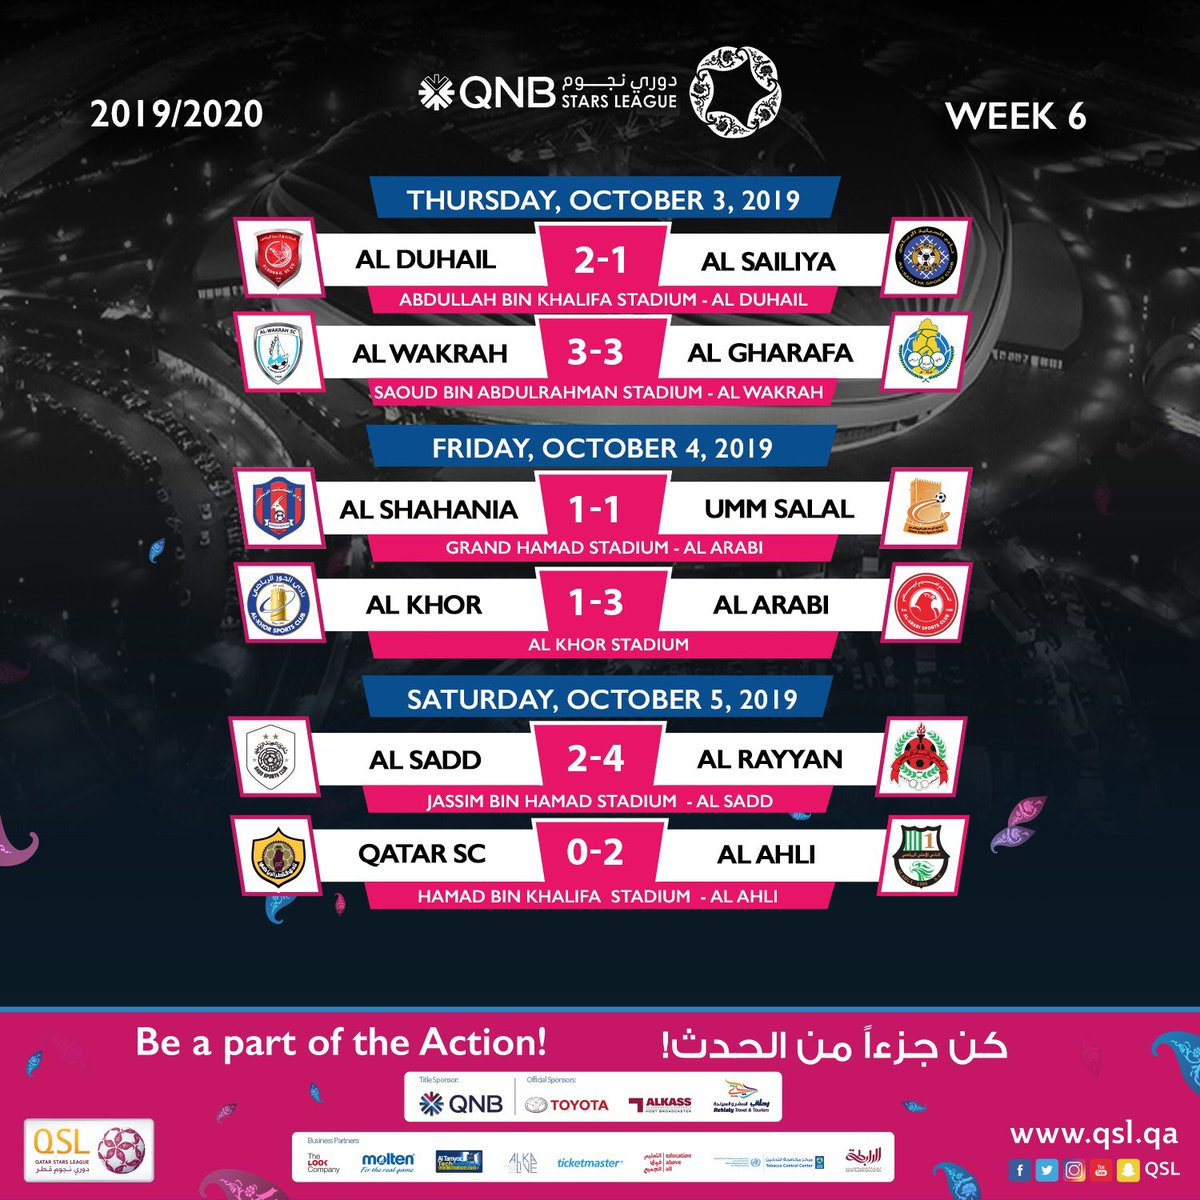 Gals have been scored in #QNBstarsLeague | week 6   Match of the week was ______x______ <br>http://pic.twitter.com/a61jOtHVXv